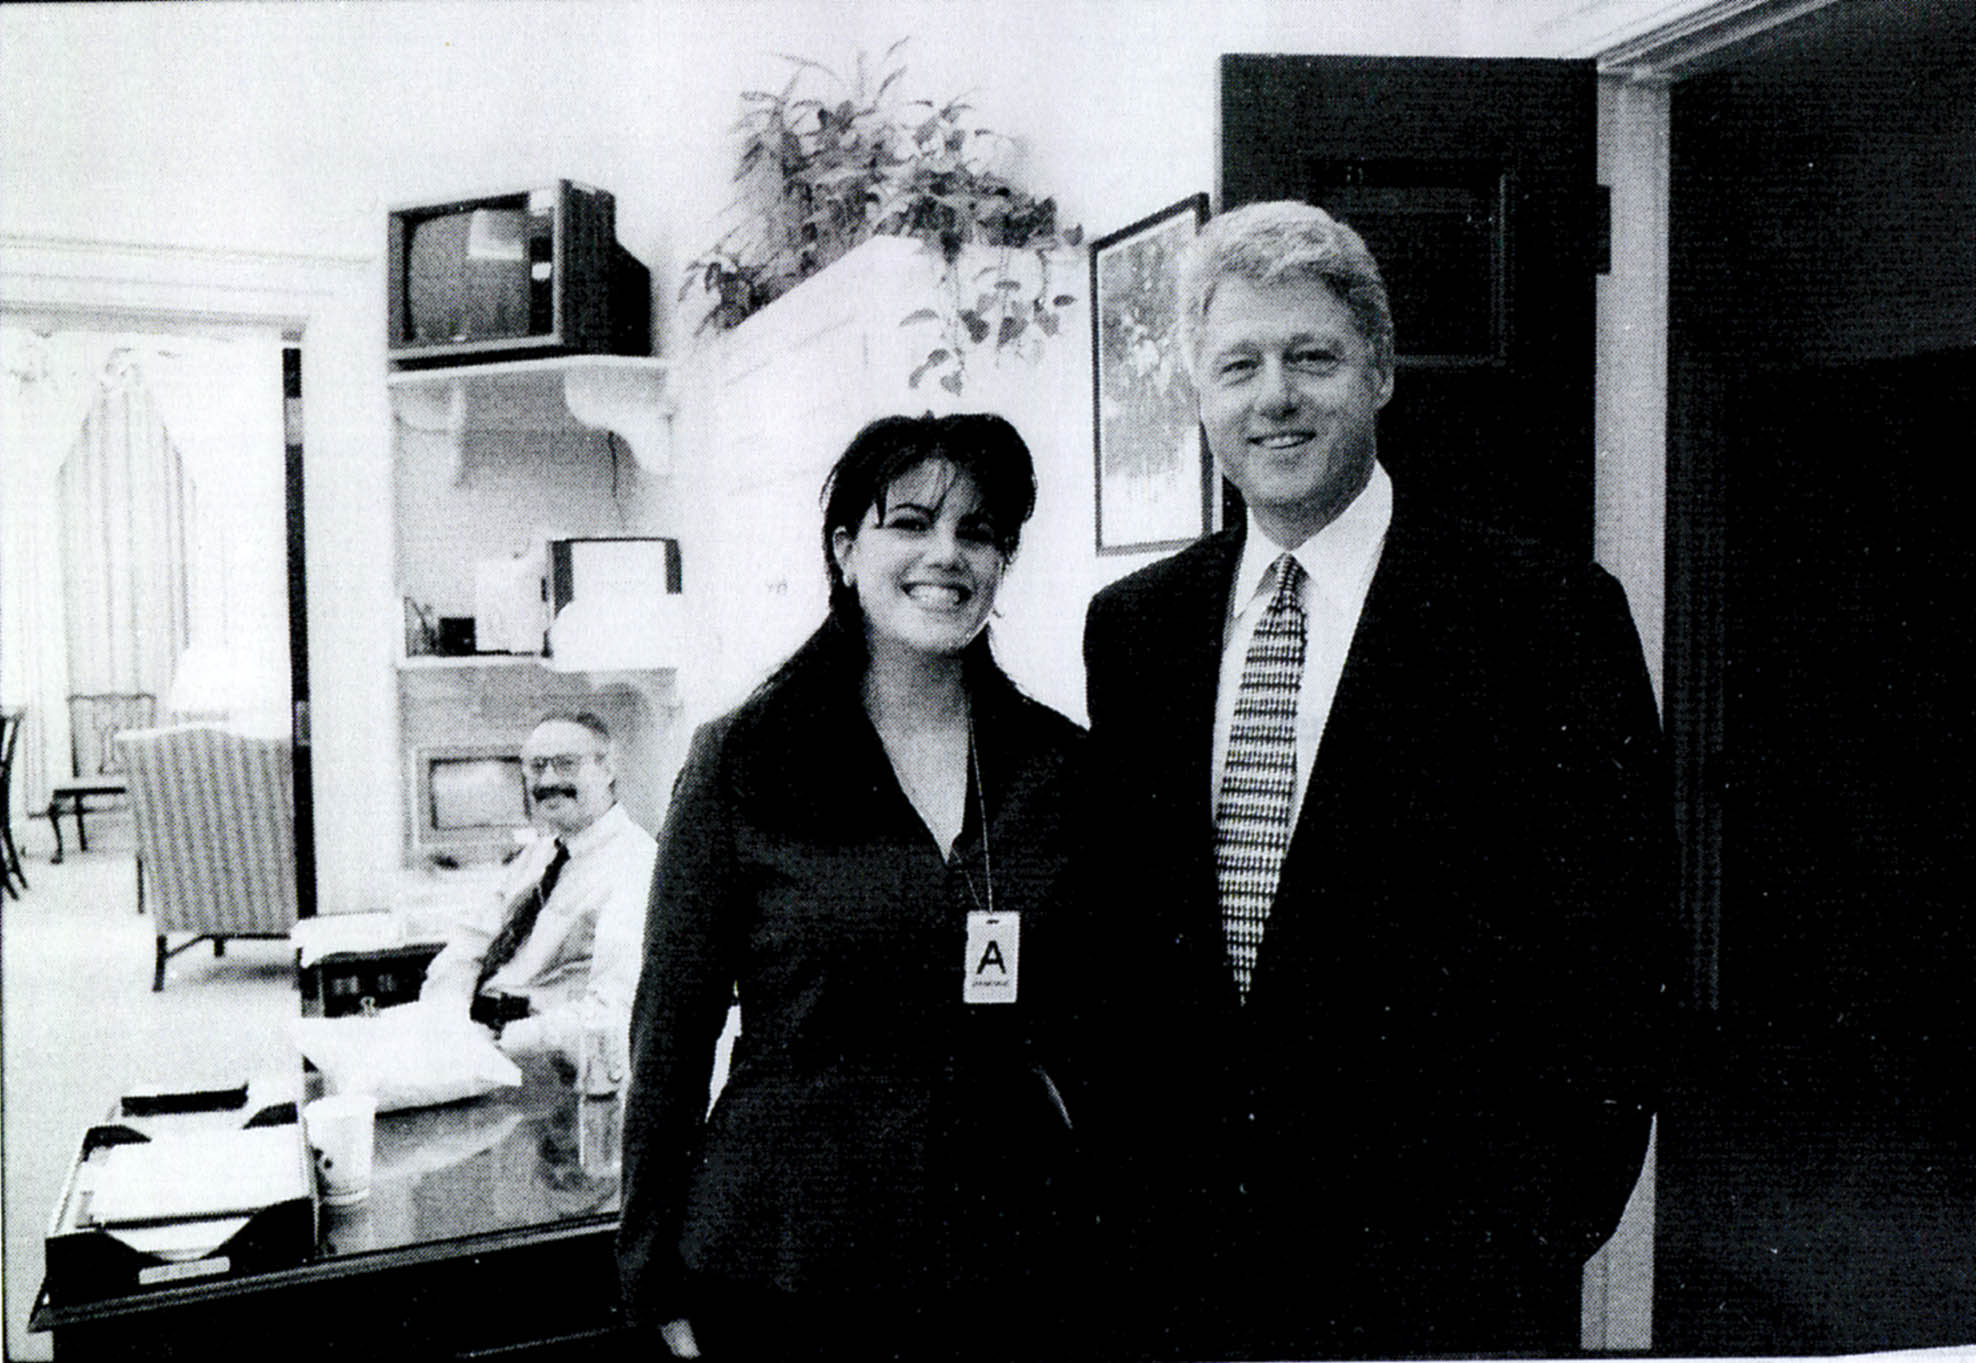 Monica Lewinsky stands next to President Bill Clinton in 1998. The two had an affair.